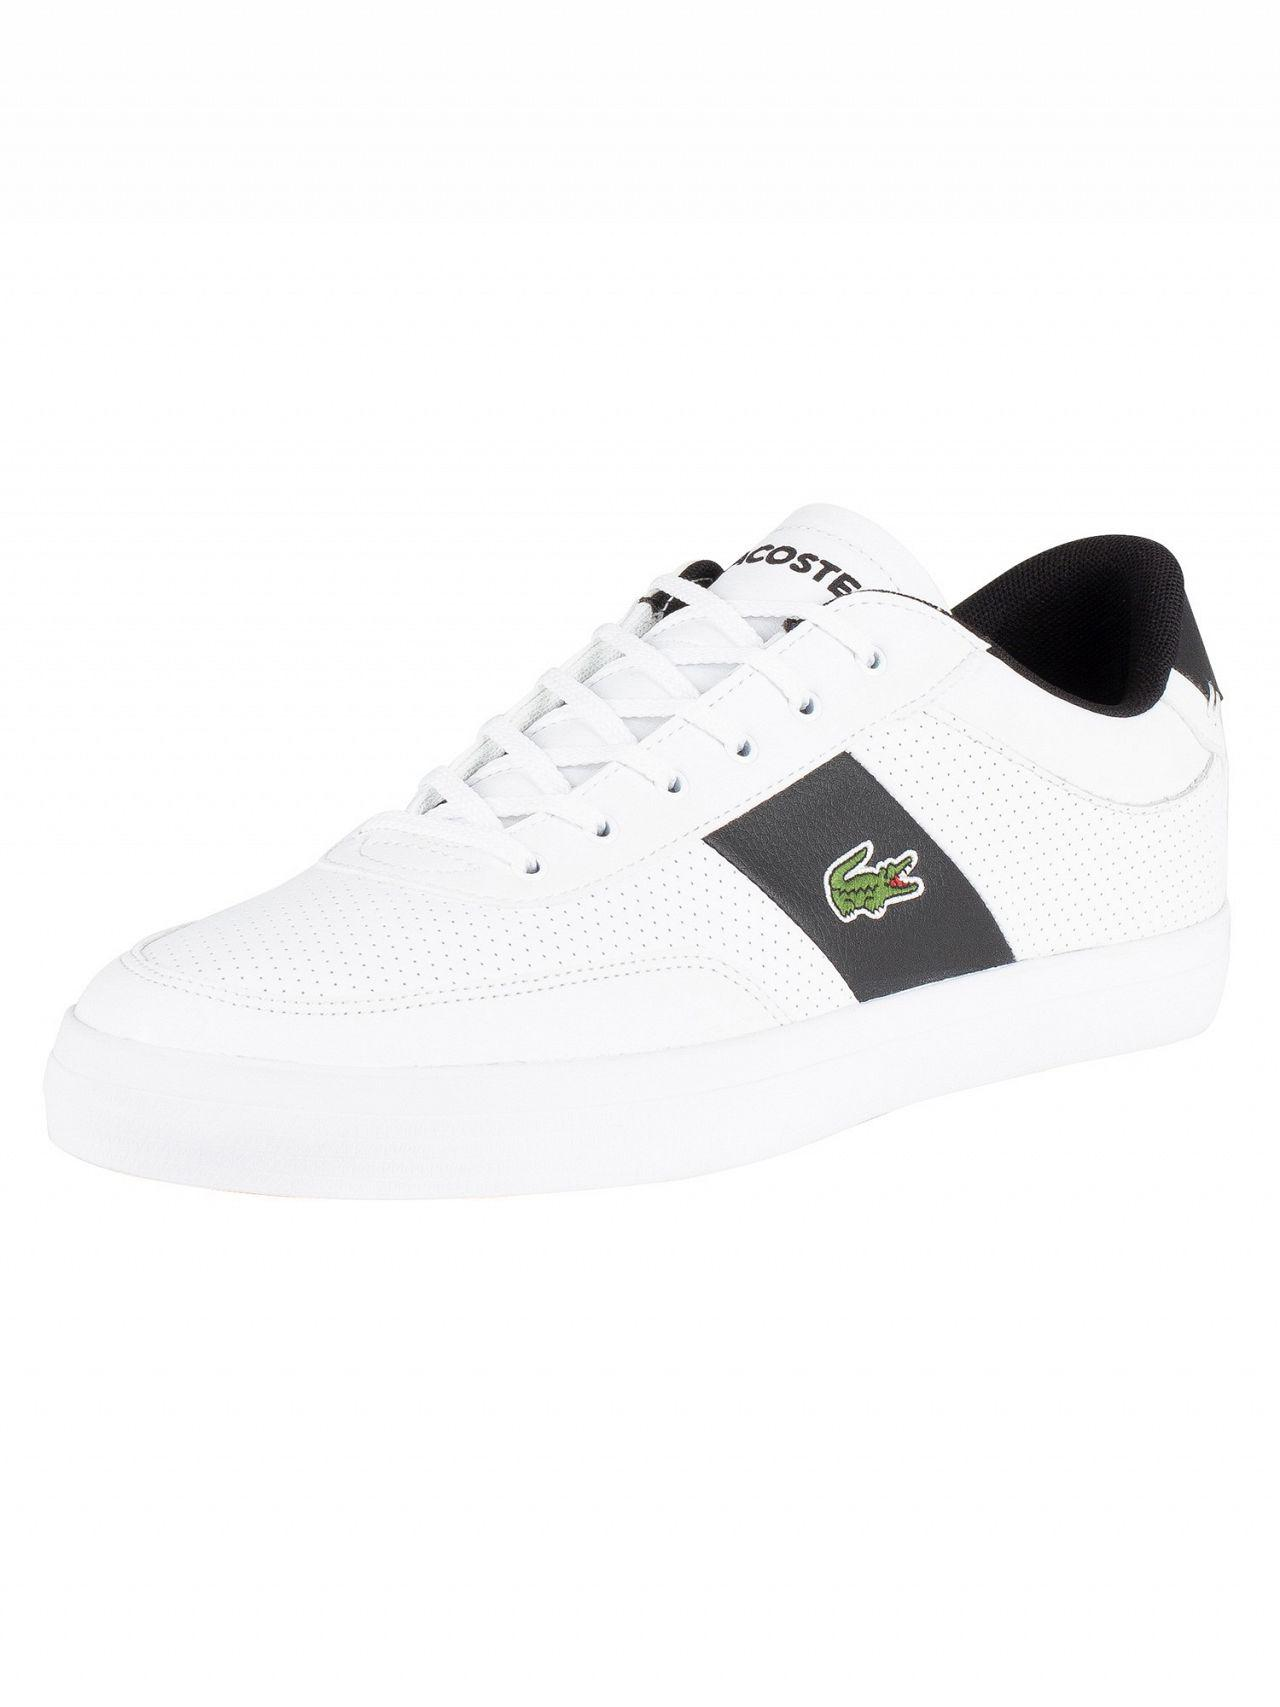 43978f1ecc374b Lyst - Lacoste Court-master 119 2 Perforated Leather Trainers in ...